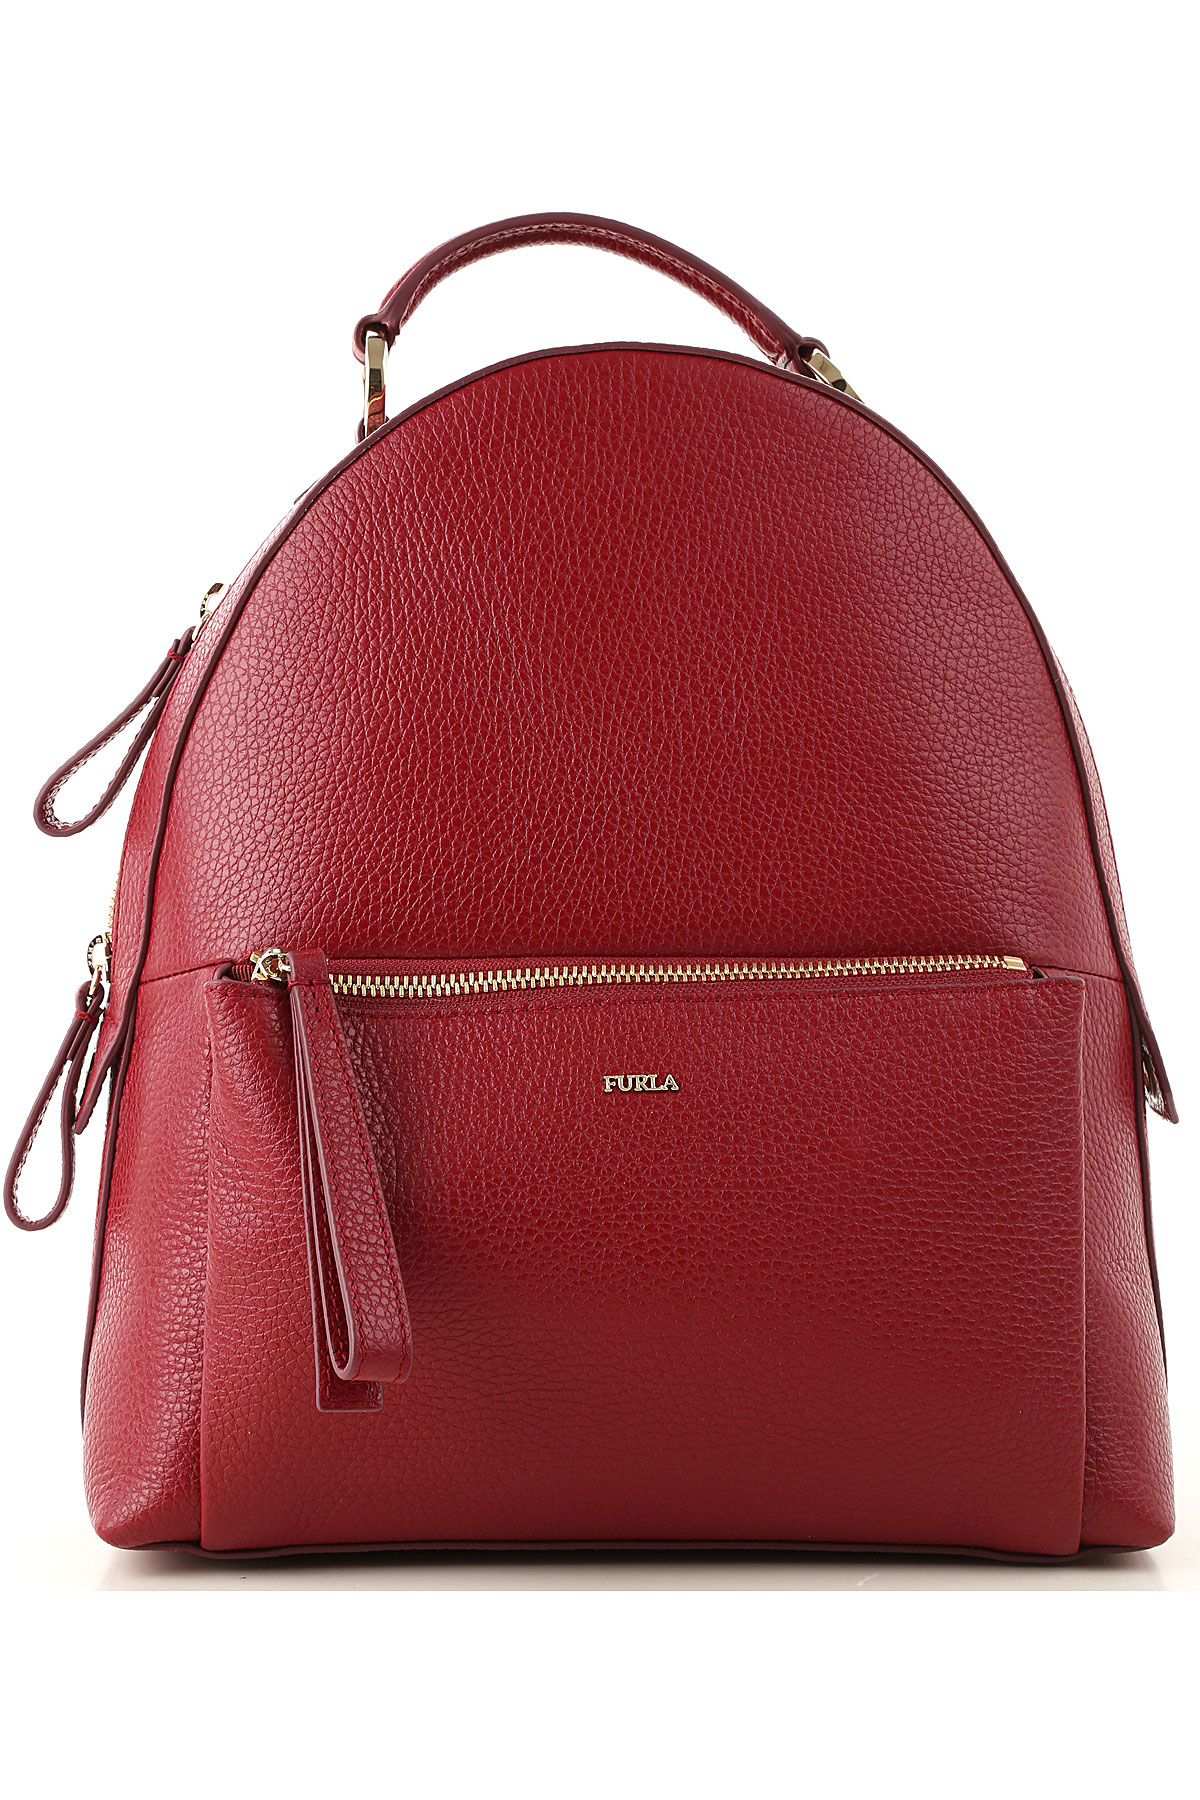 Furla Backpack for Women On Sale, Cherry, Leather, 2019